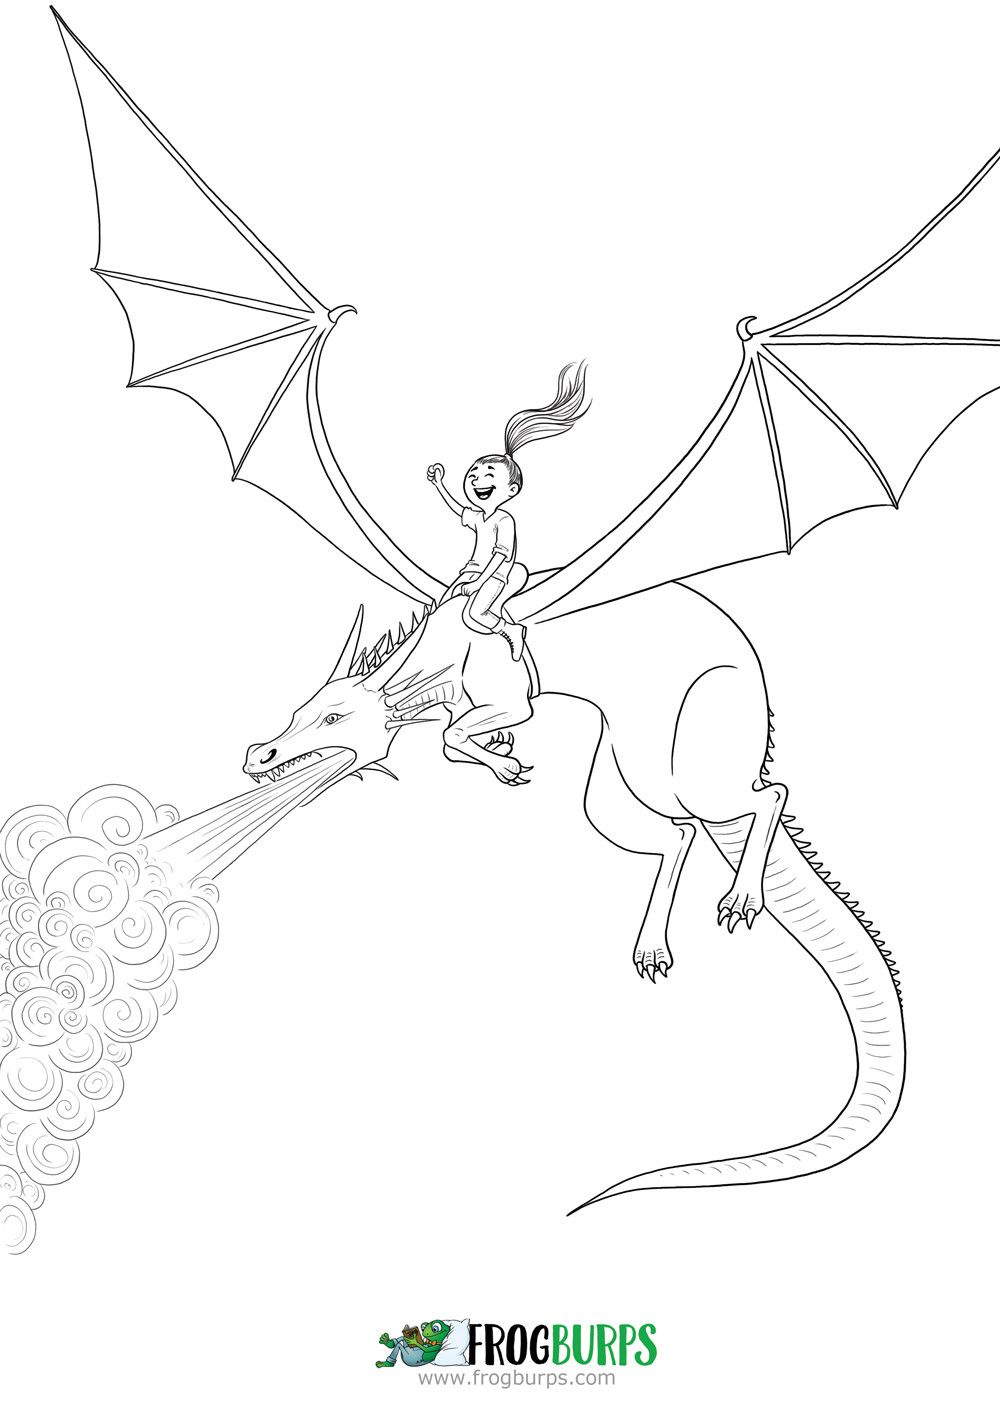 Dragon Rider Coloring Page - youngandtae.com in 2020 ...